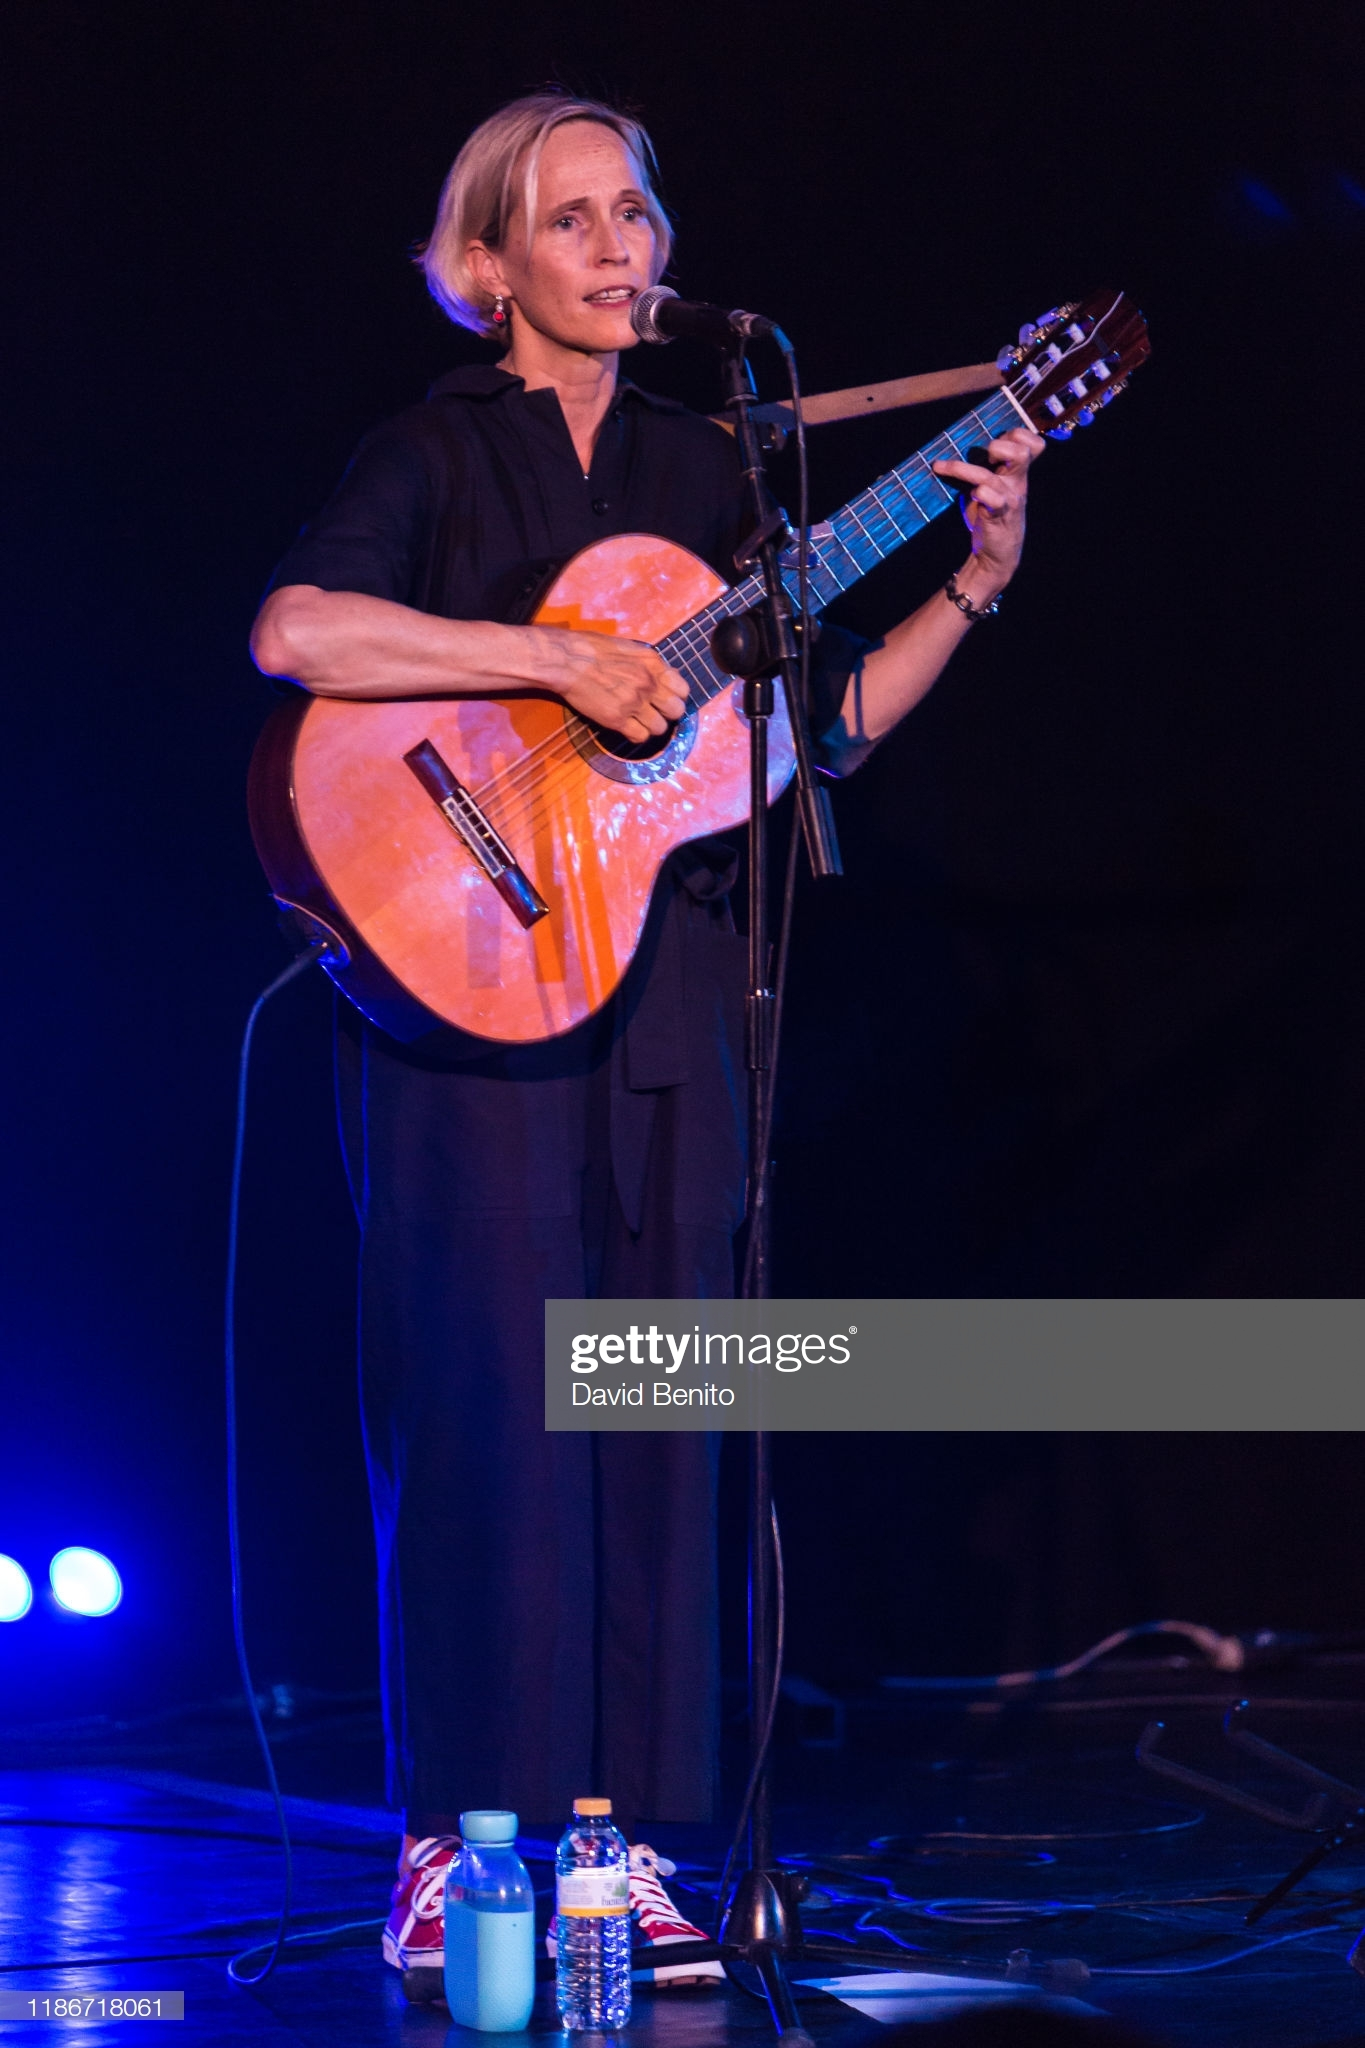 gettyimages-1186718061-2048x2048